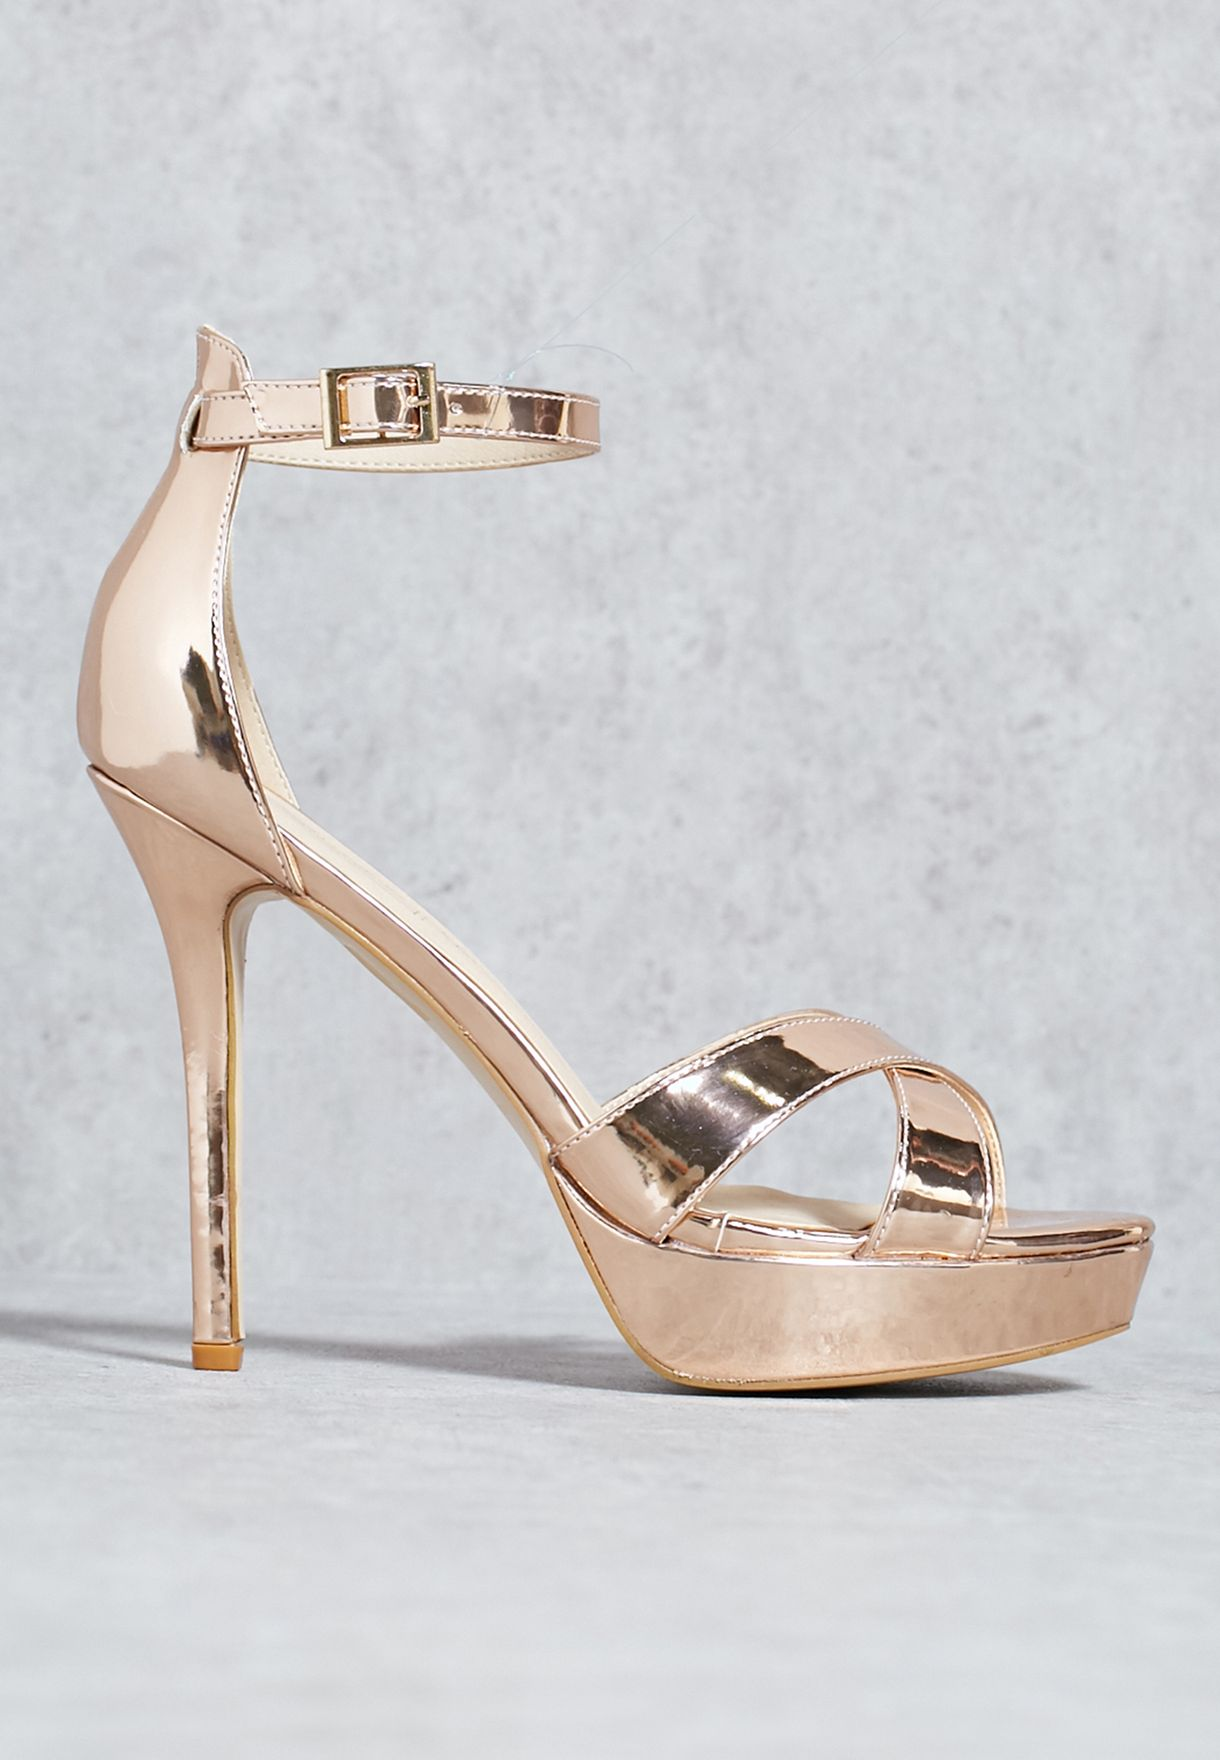 68b7a298dd96 Shop Truffle gold Dressy platform sandal SANDY10 B for Women in UAE ...